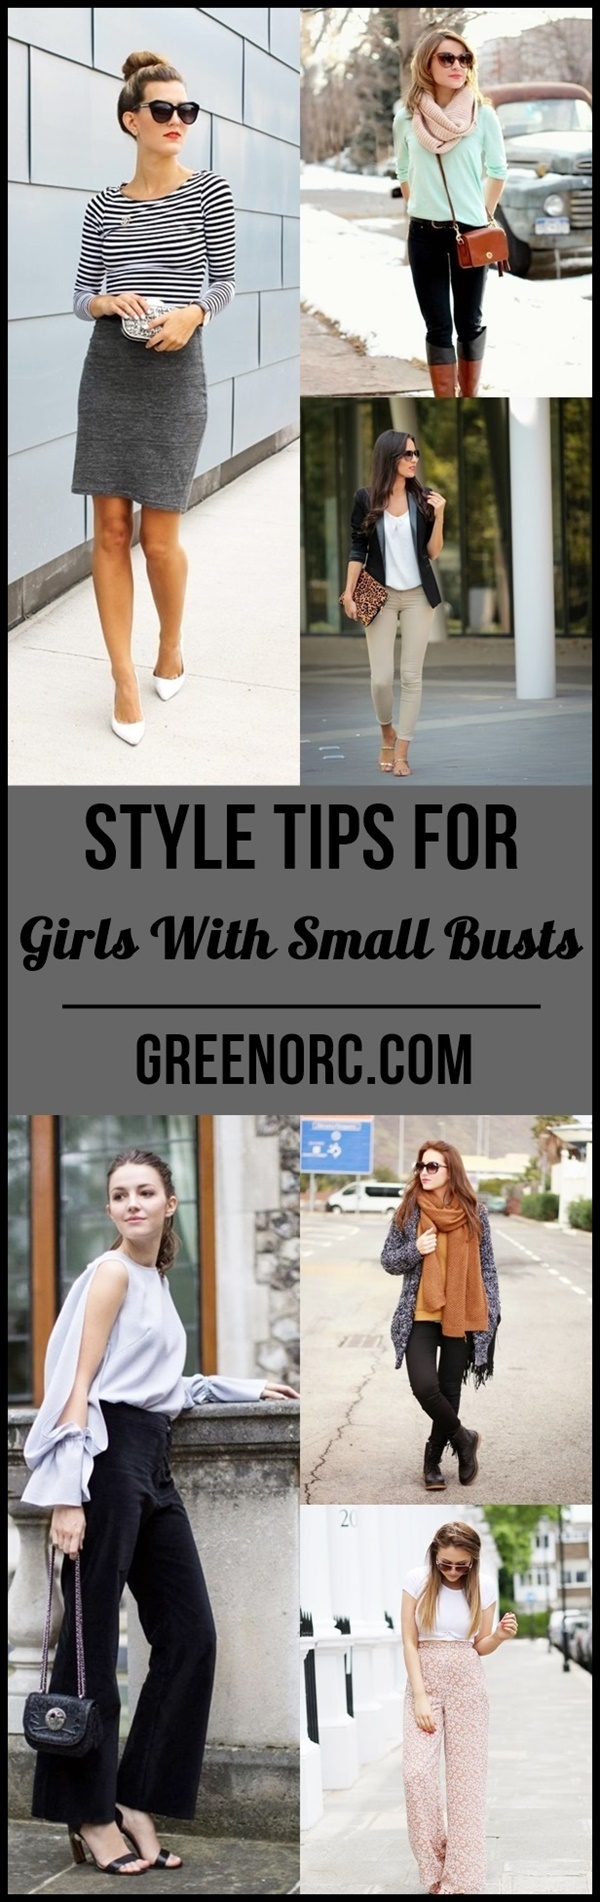 Style Tips For Girls With Small Busts